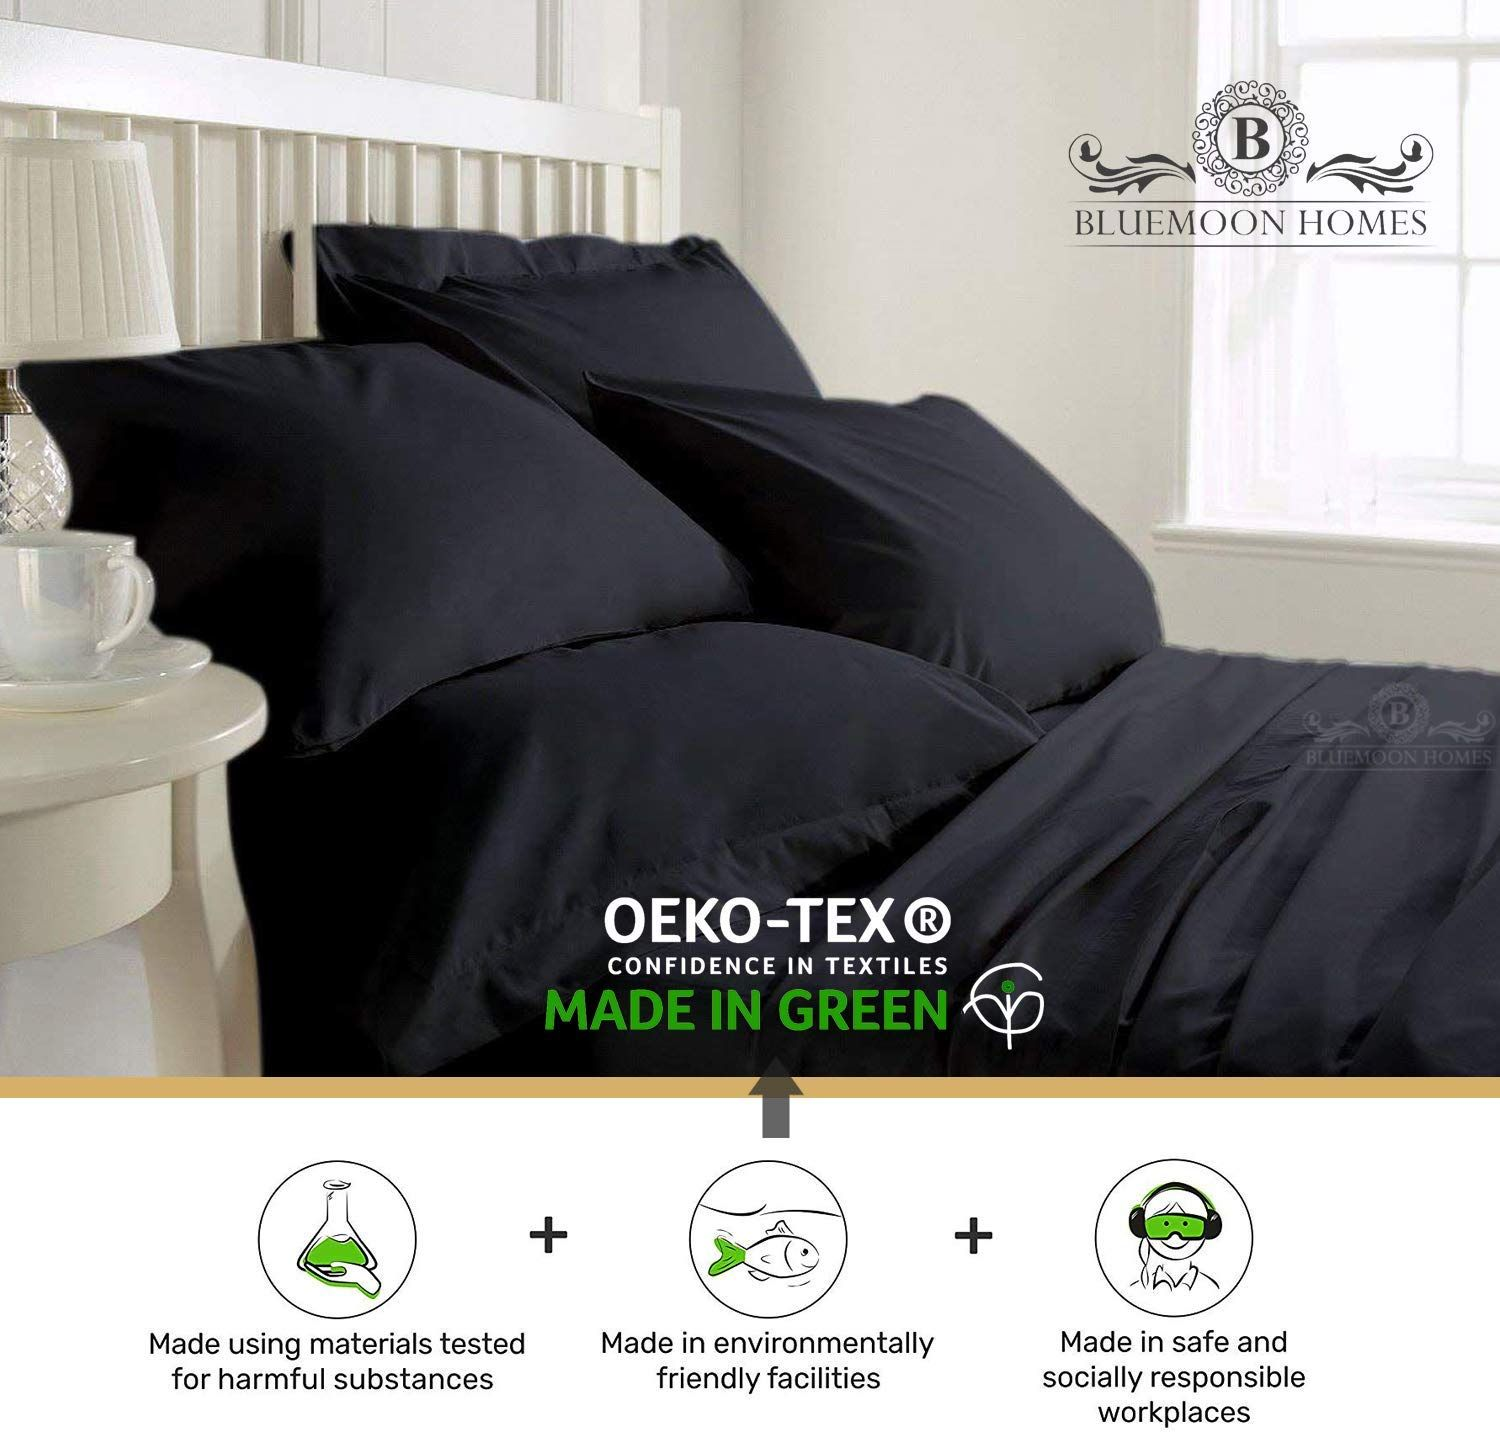 Black Solid All Bedding Items 1000 Thread Count 100/%Egyptian Cotton US Sizes